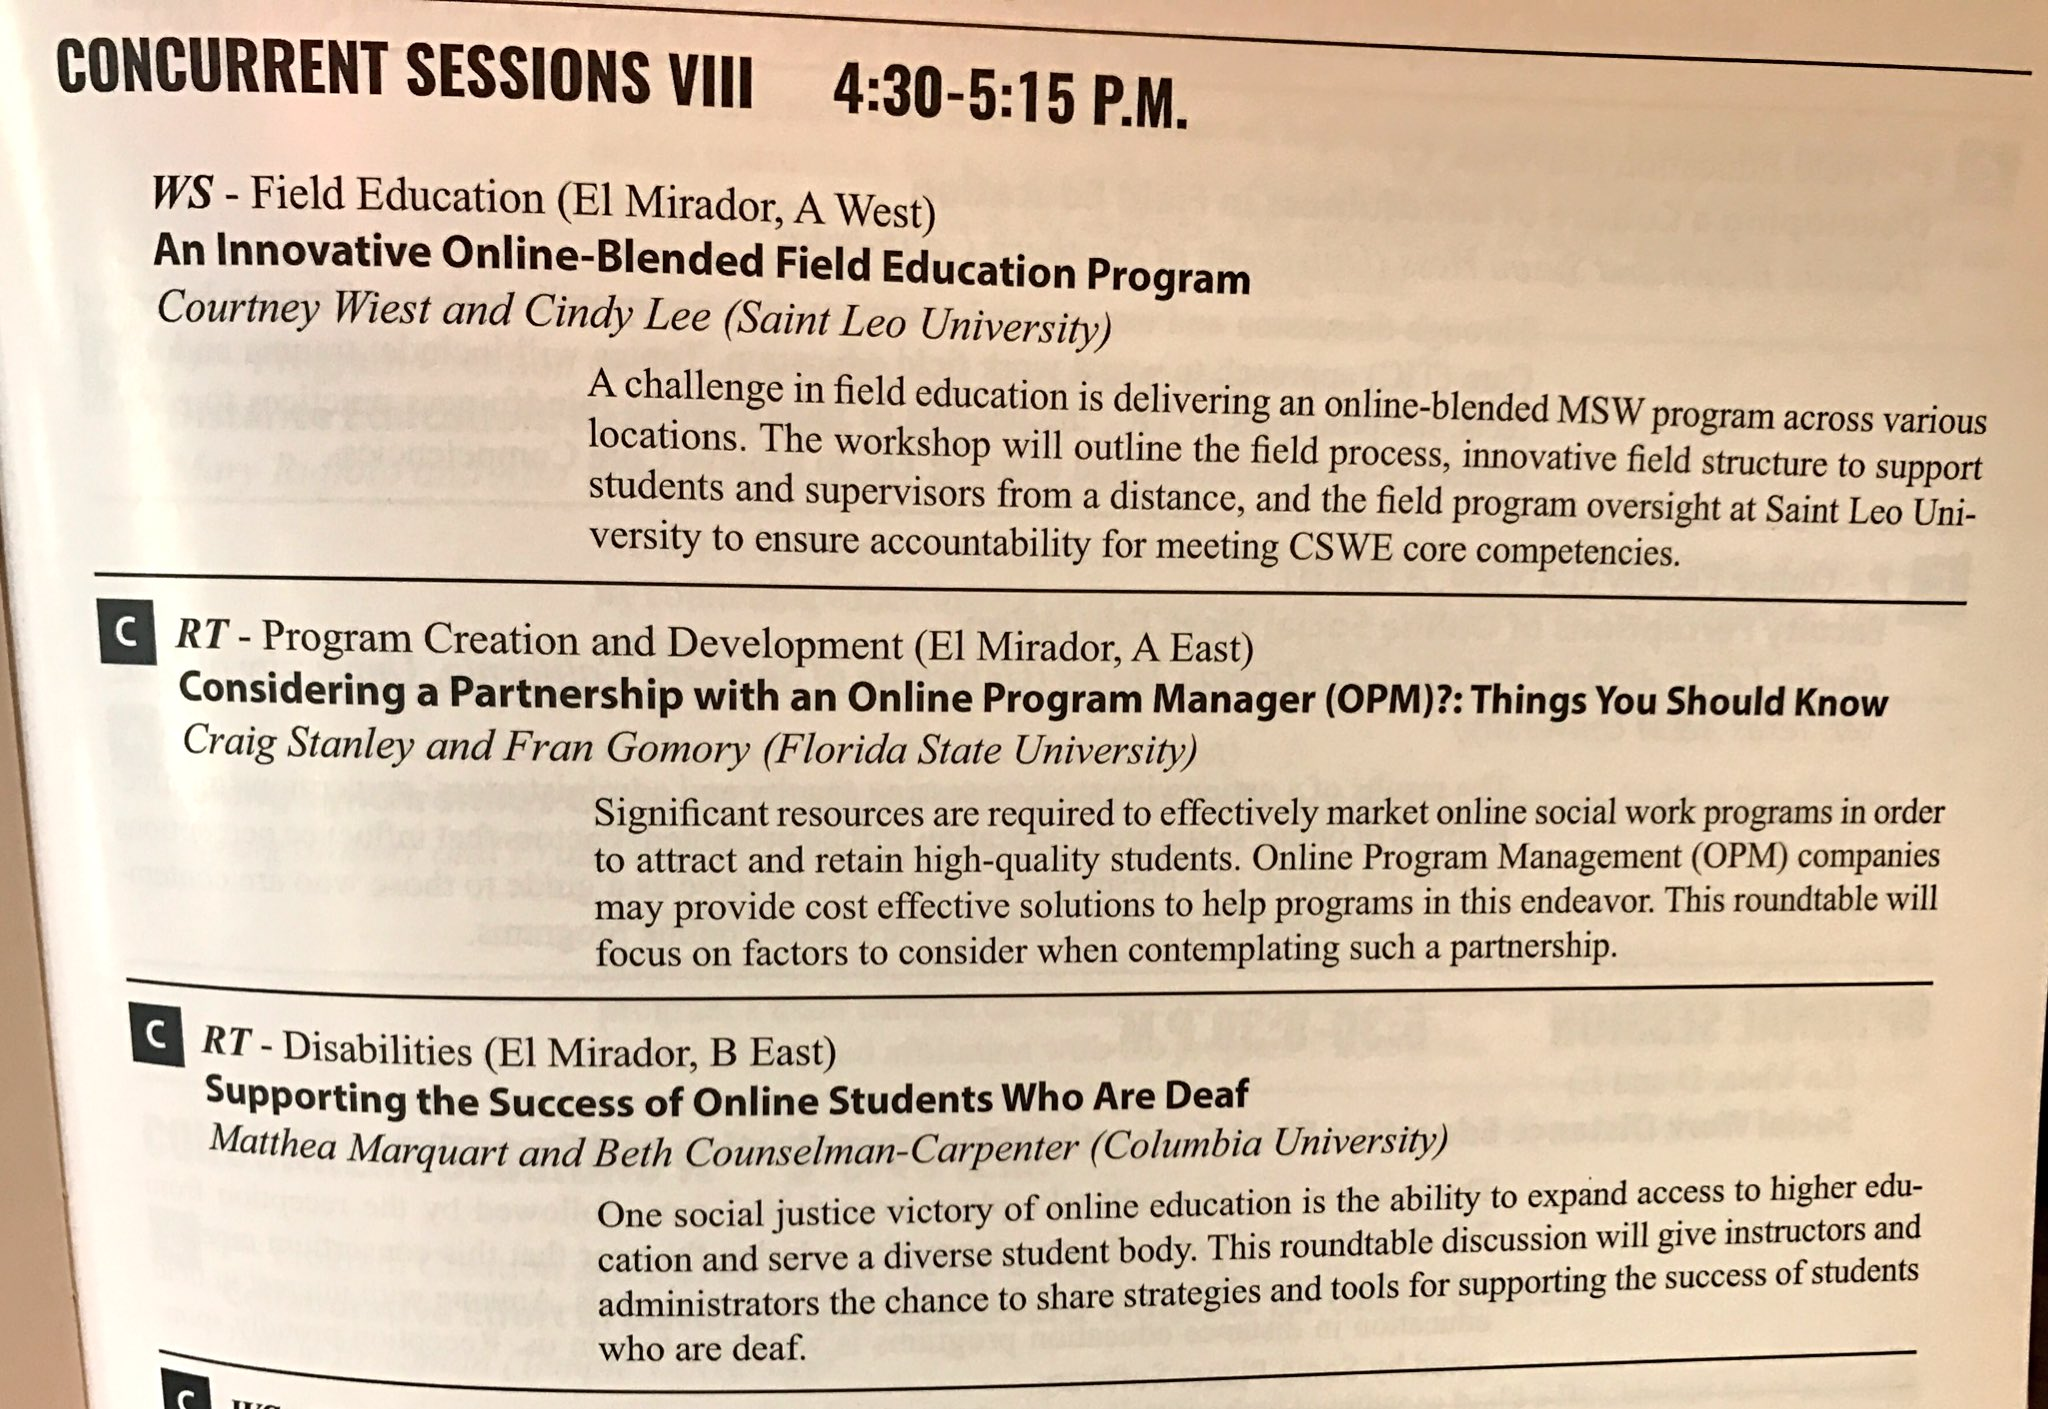 Please join our session tomorrow (Thurs) at 4:30 on supporting the success of students who are deaf #swde2017 @ElisabethAnneCC @ColumbiaSSW https://t.co/AhFl6cYRQ4